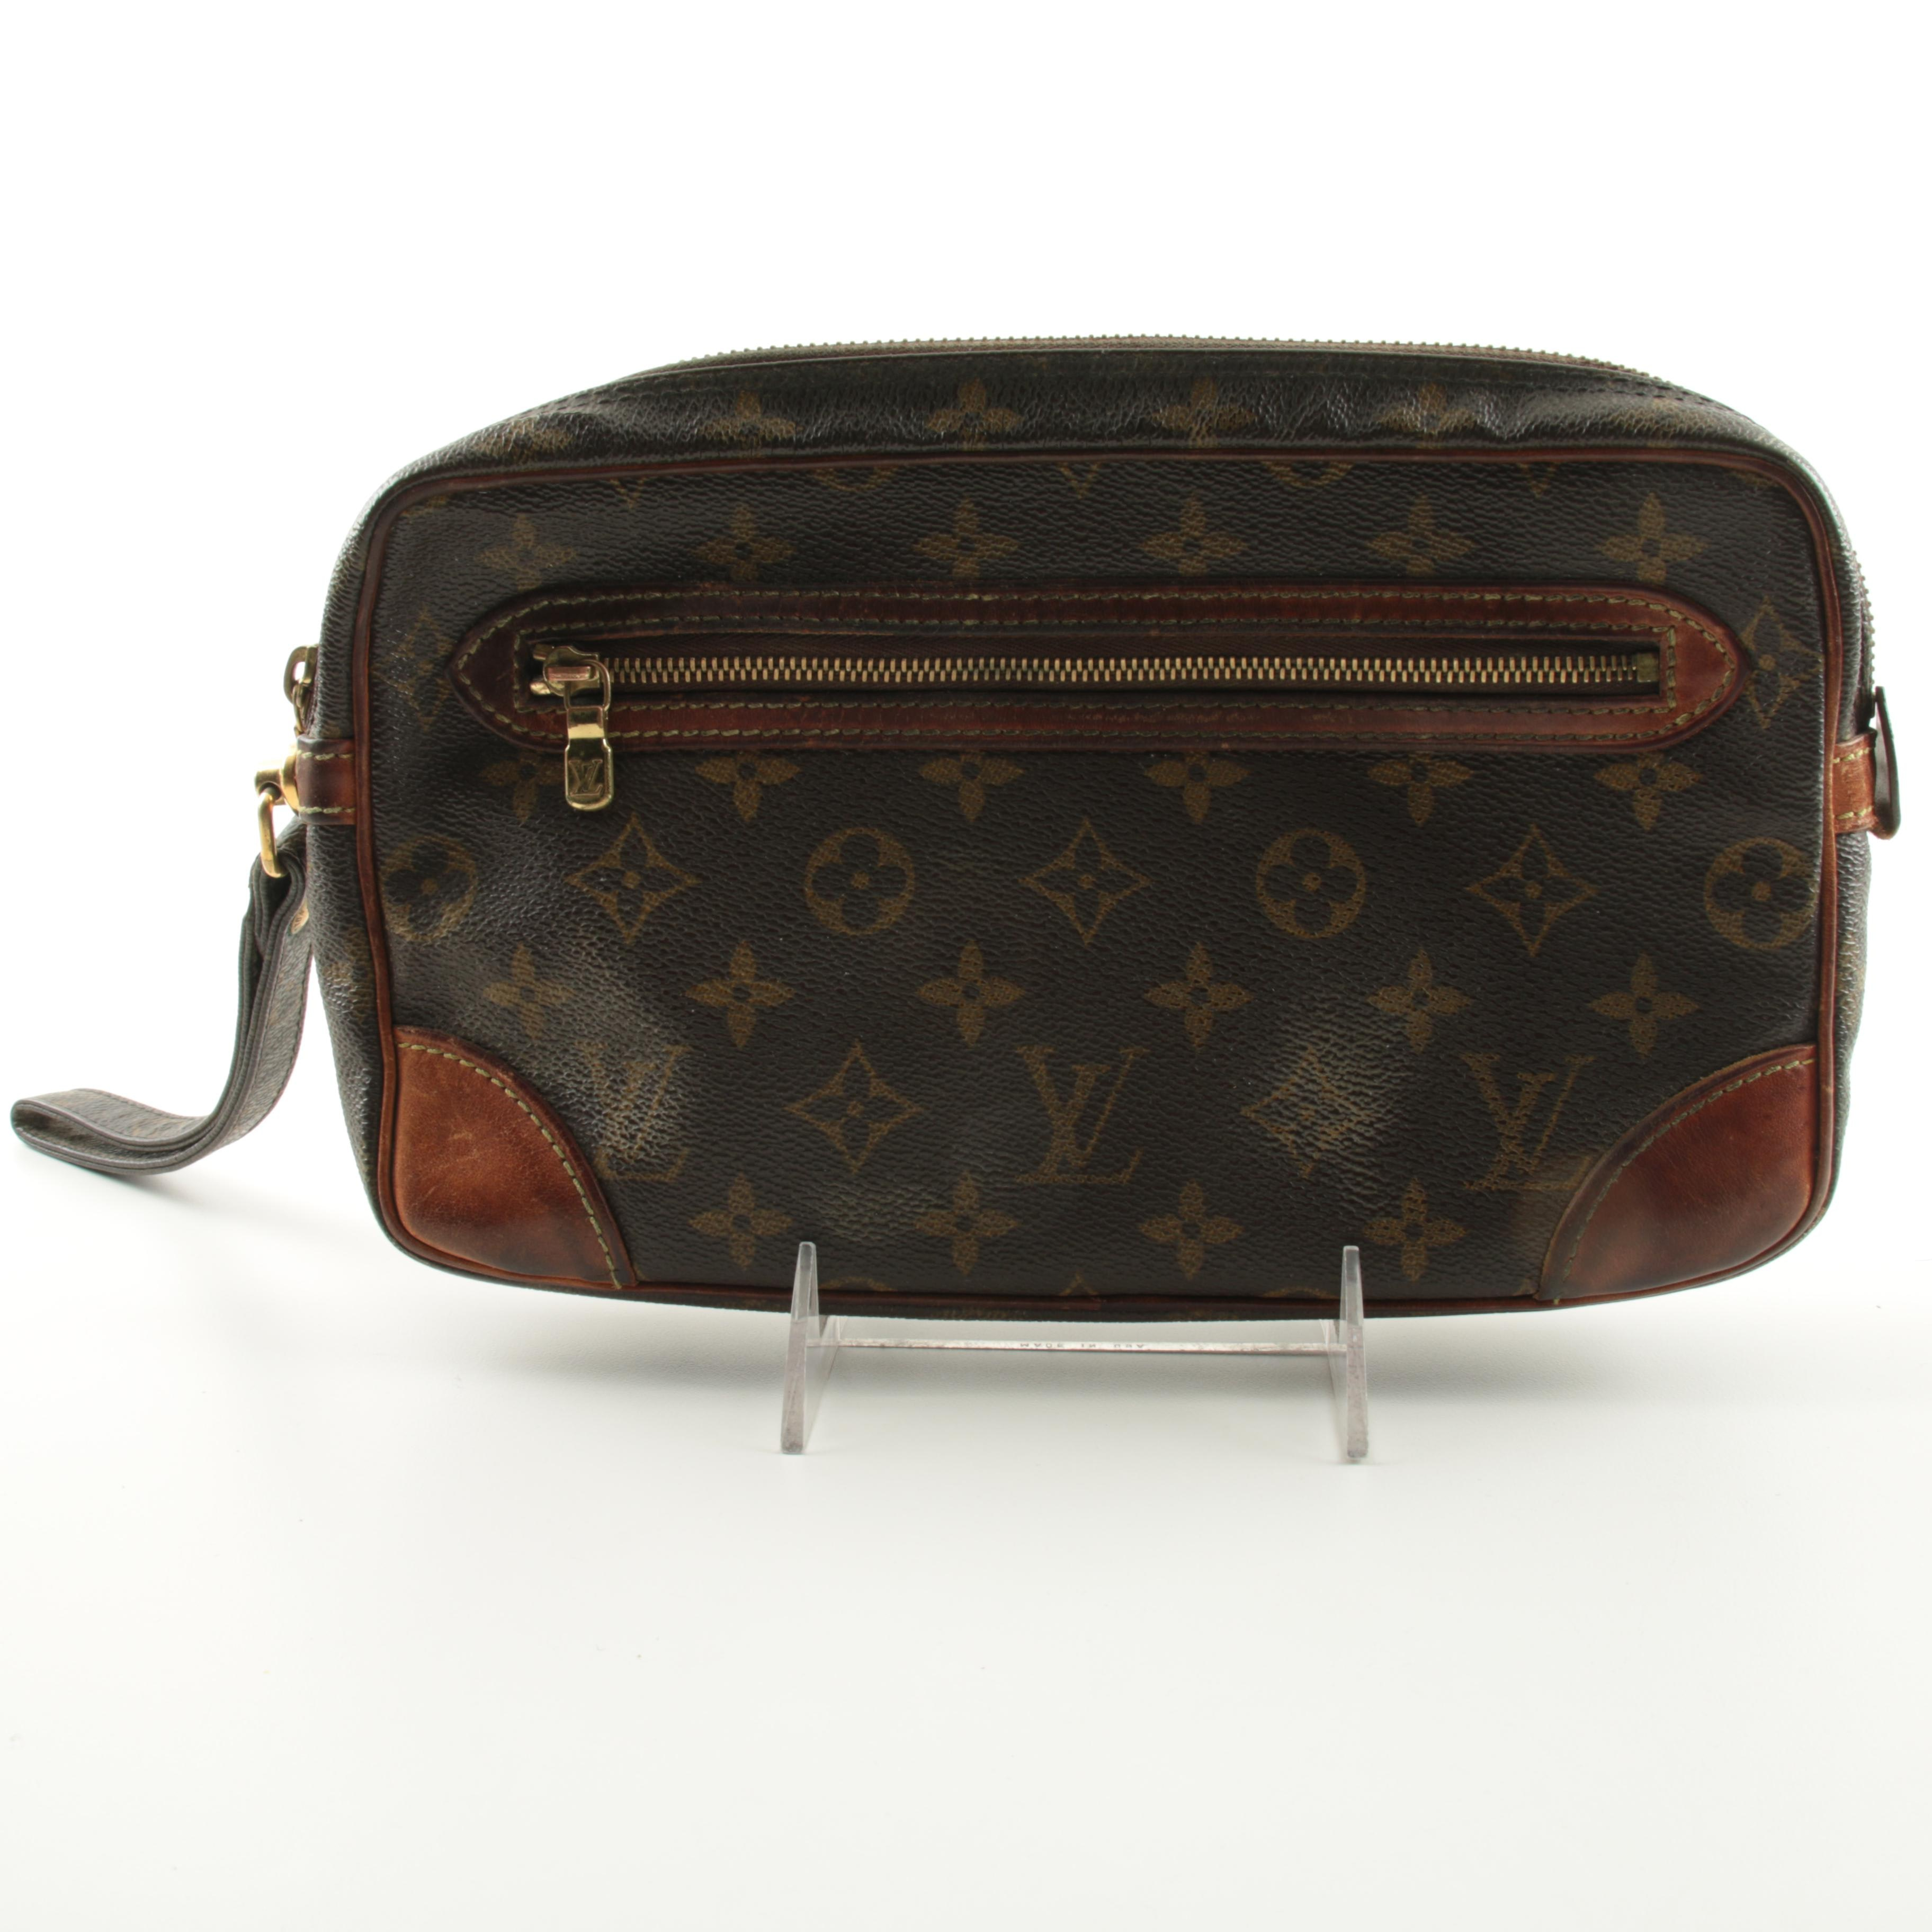 Vintage Louis Vuitton Monogram Wristlet